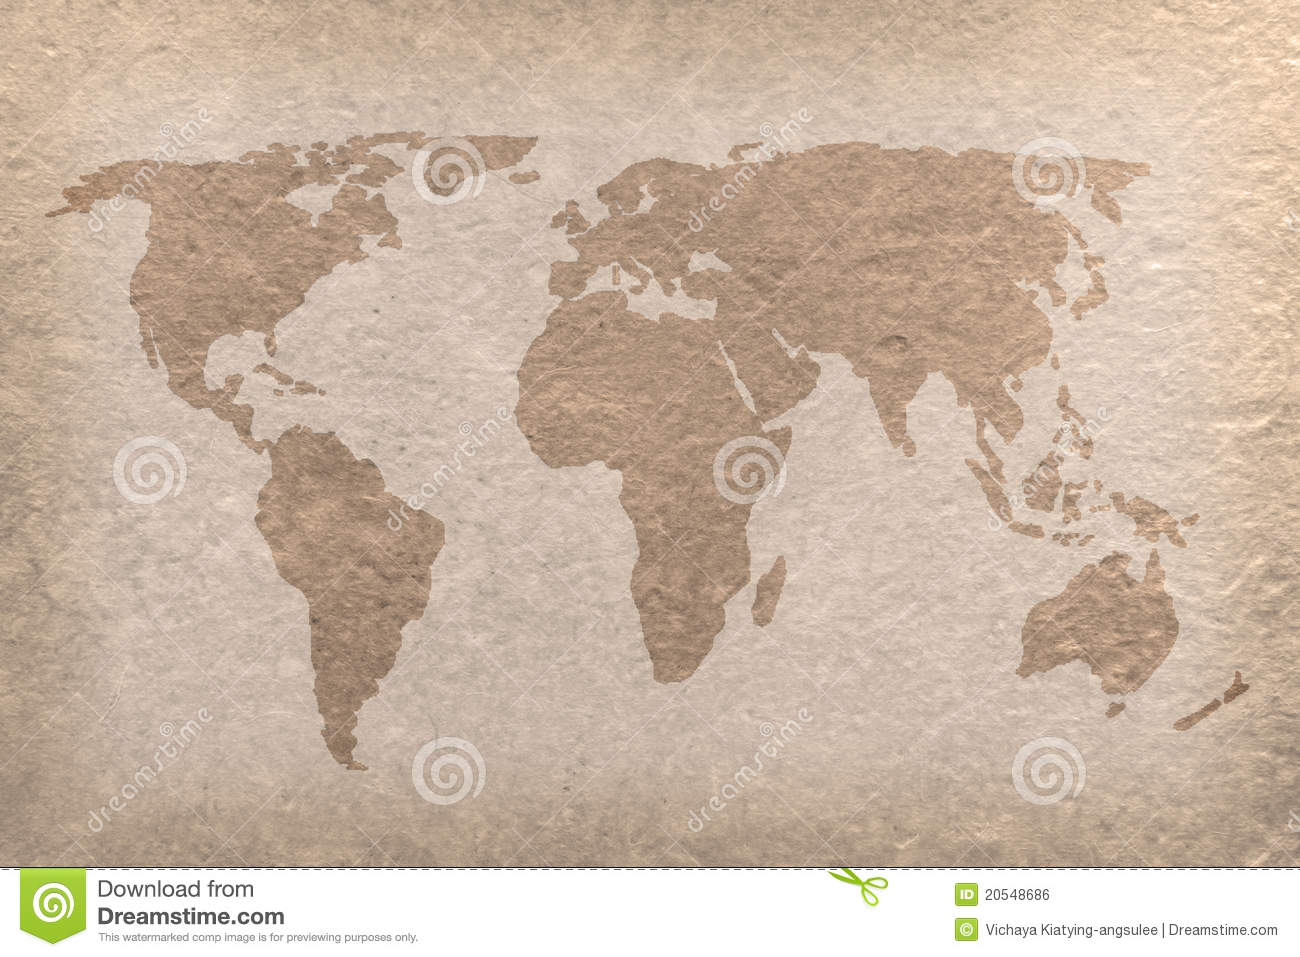 Old world map wallpaper border wallpapersafari old world map wallpaper border vintage world map paper craft 1300x957 gumiabroncs Image collections